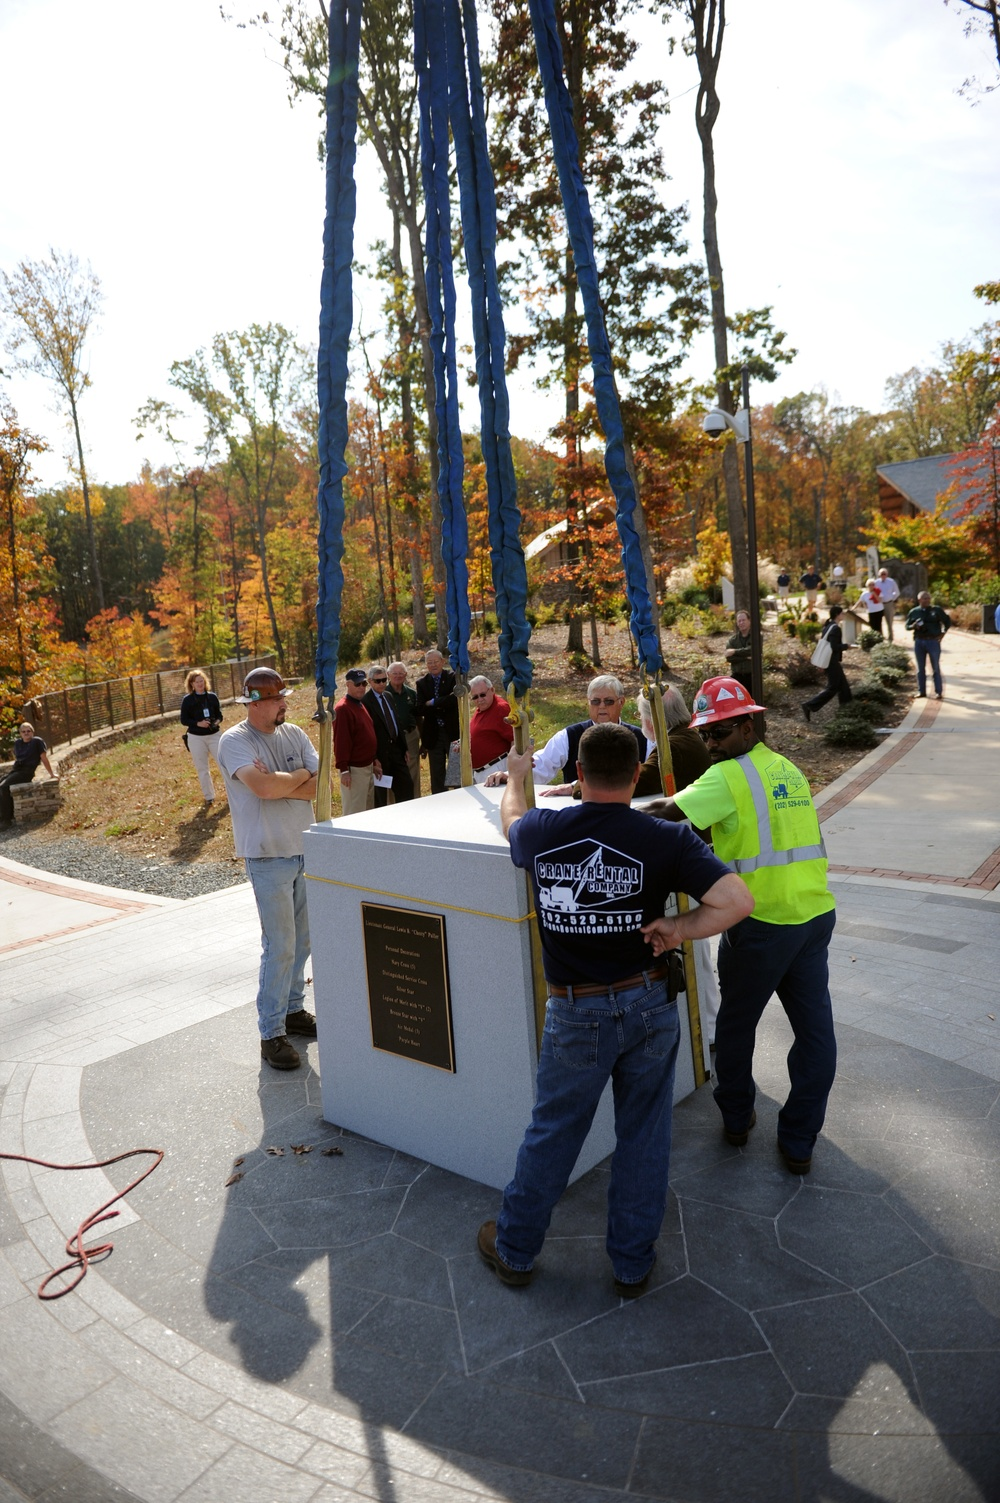 The Marine Corps Museums installs Chesty Puller Monument